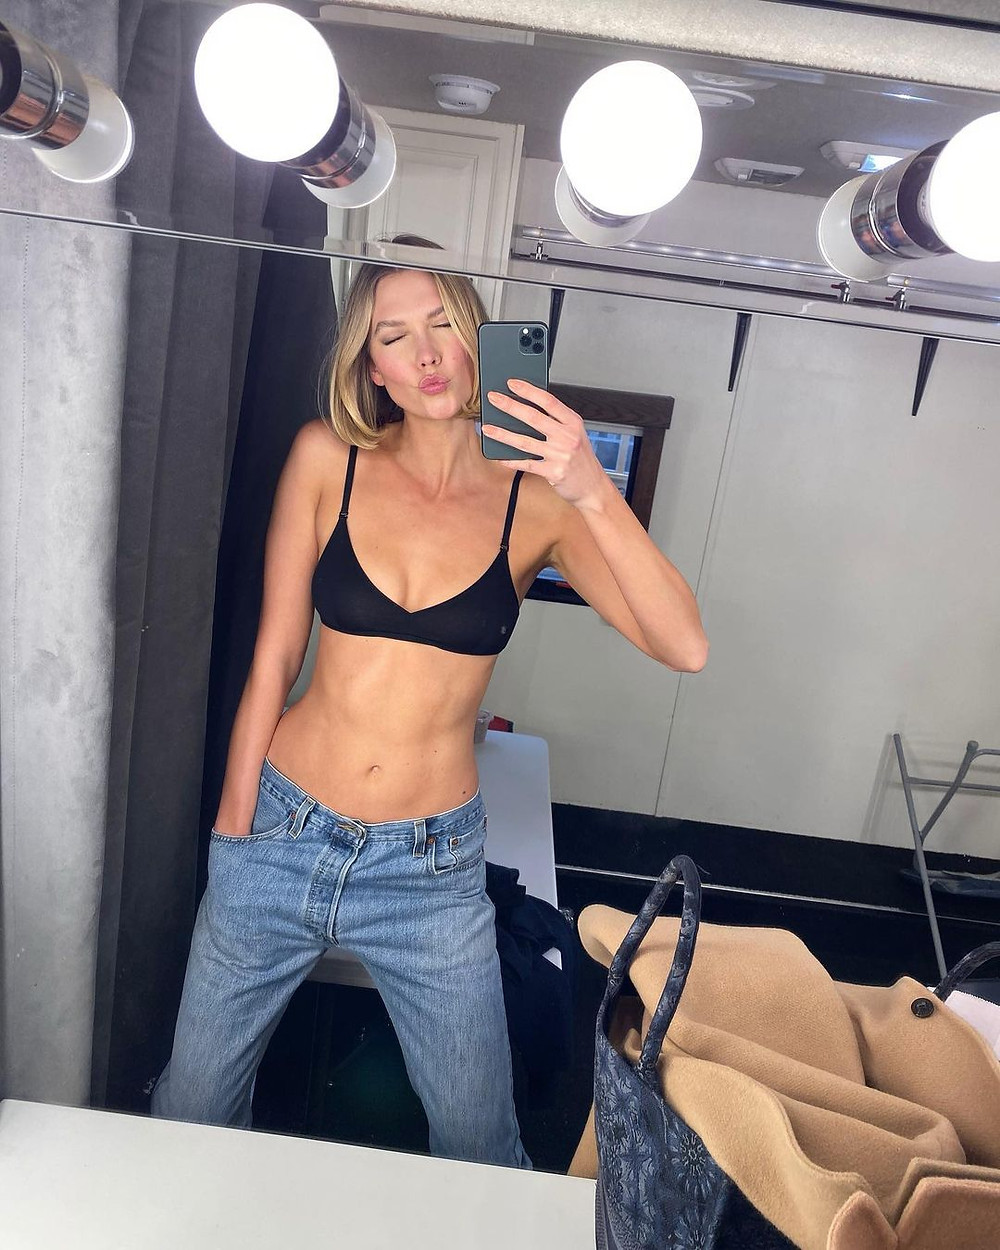 karlie kloss wears the kit undergarments bralette in black and blue jeans while posing for a selfie in front of a mirror